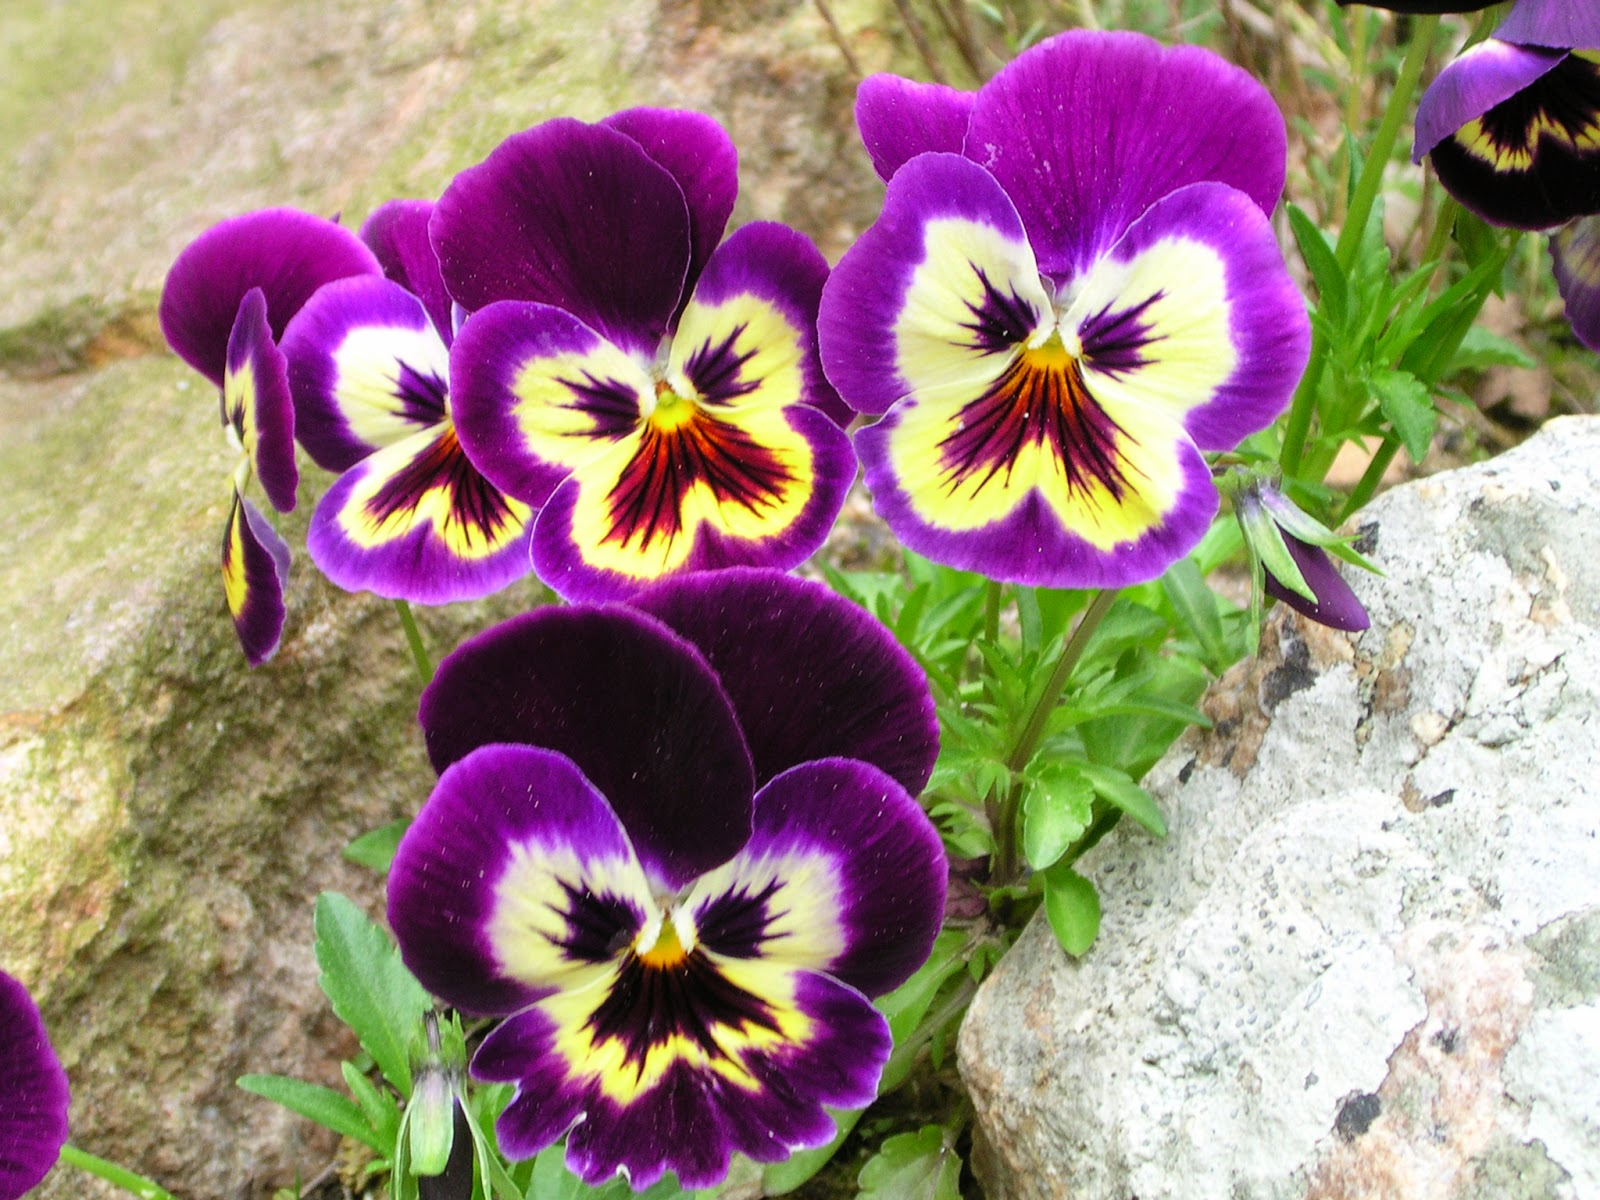 pansies flower meaning  flower, Natural flower